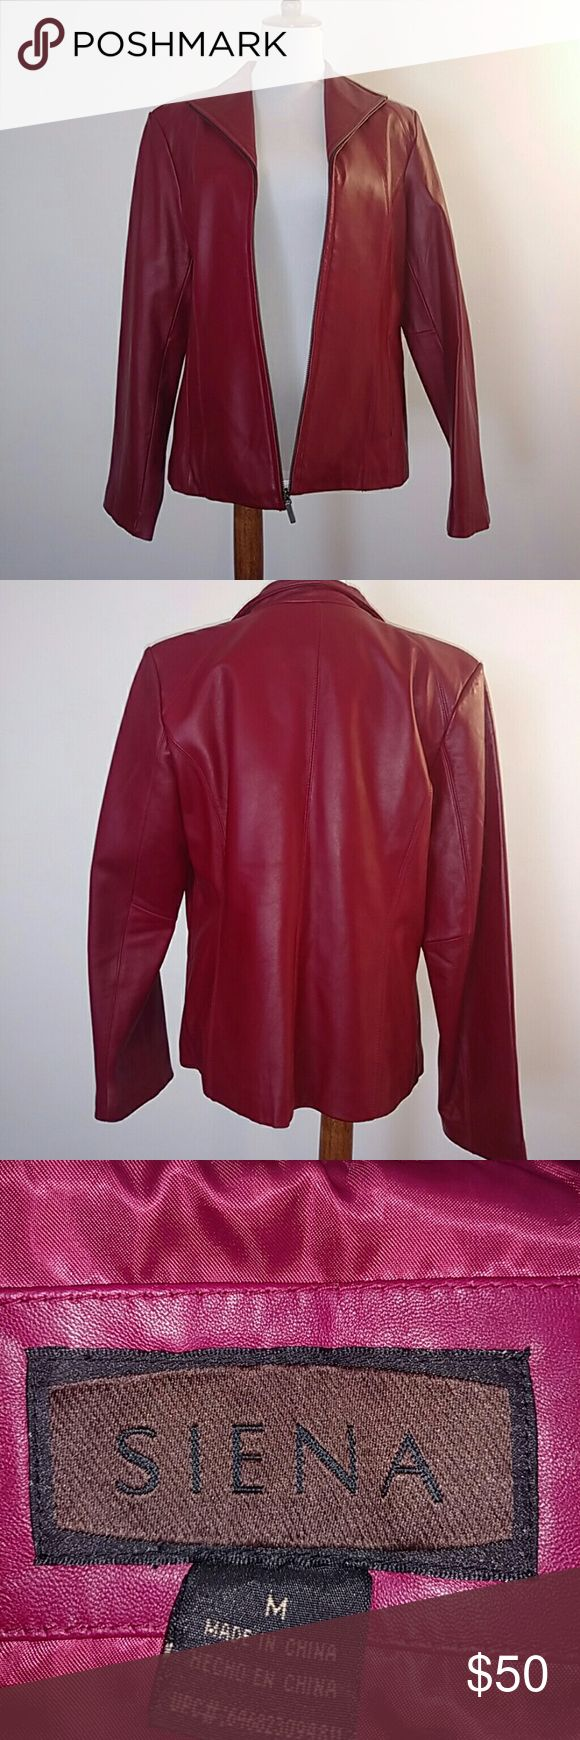 Siena Red Leather Jacket Siena red leather jacket. Worn only a handful of times Siena Studio Jackets & Coats